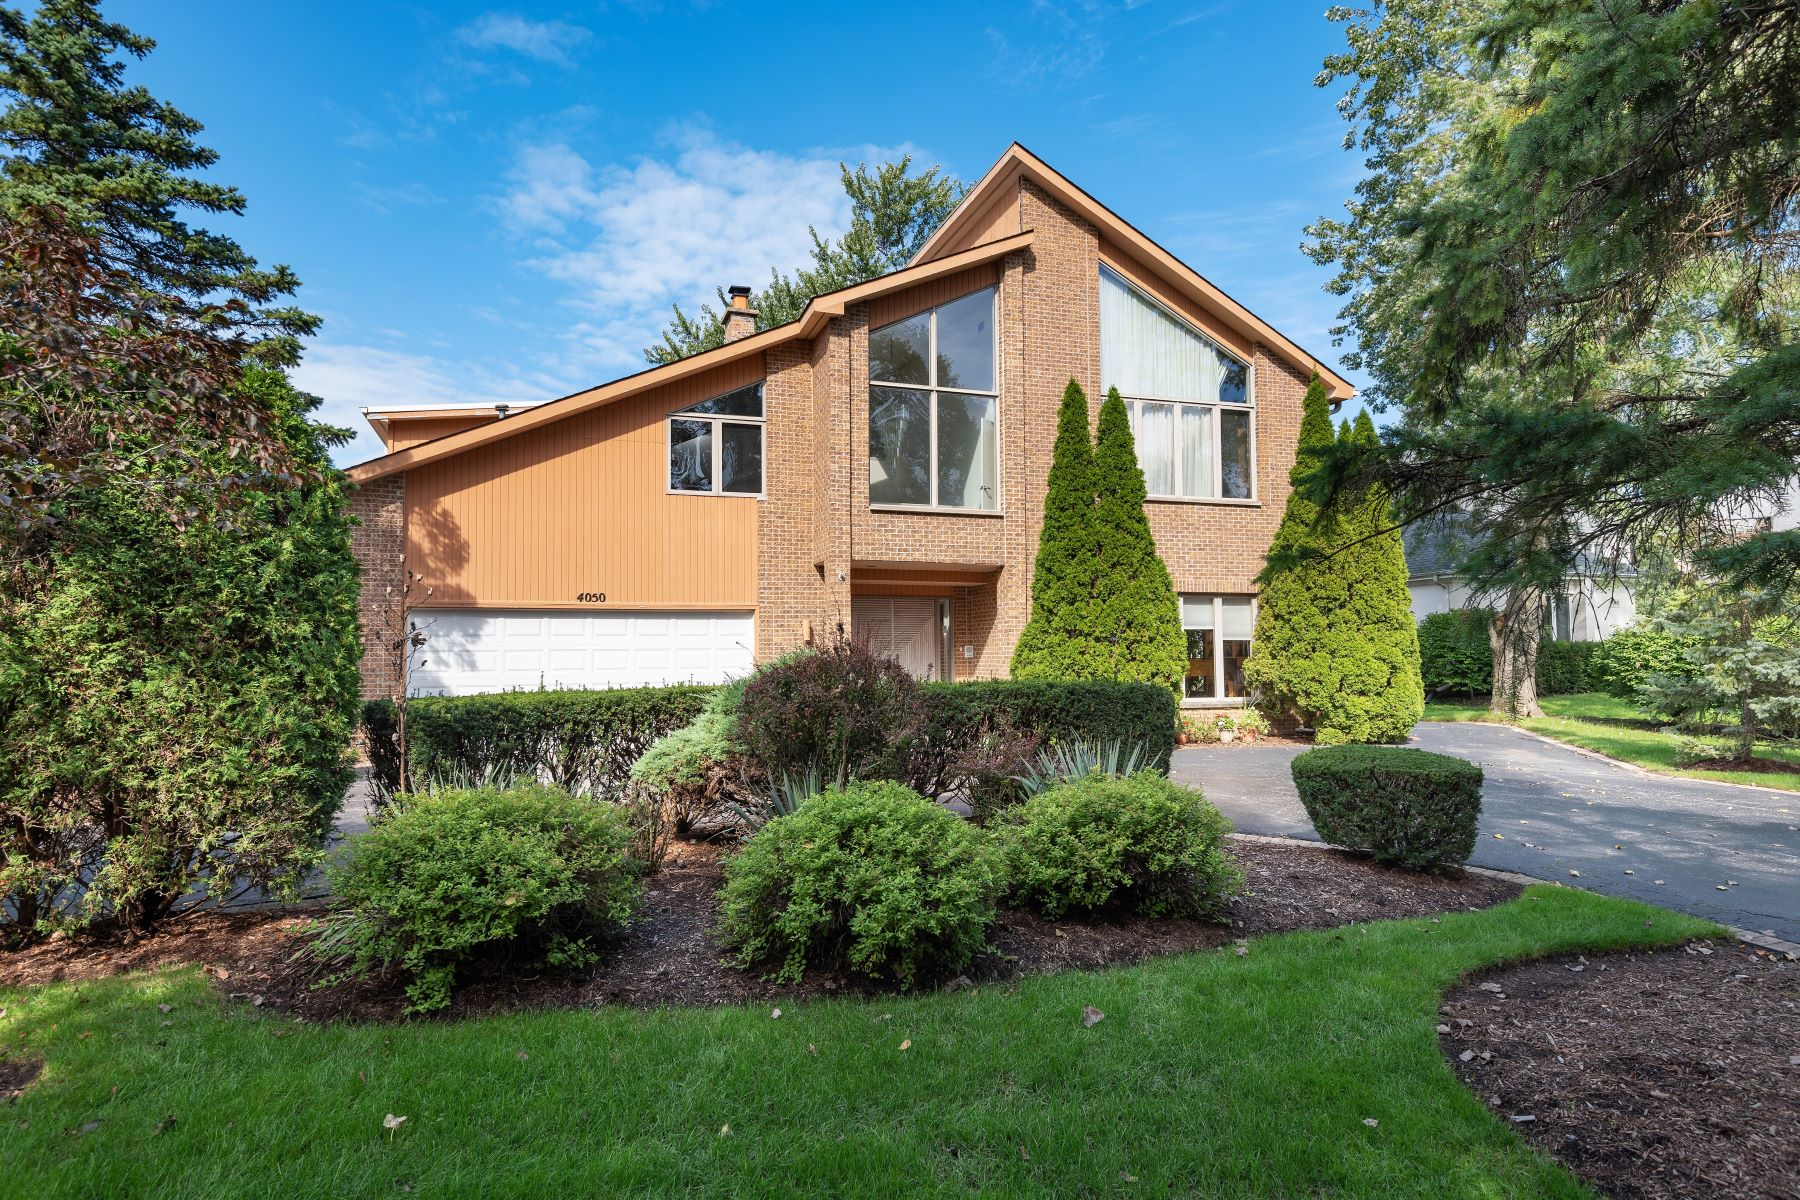 Single Family Homes for Active at A Must See 4050 Greenacre Drive Northbrook, Illinois 60062 United States